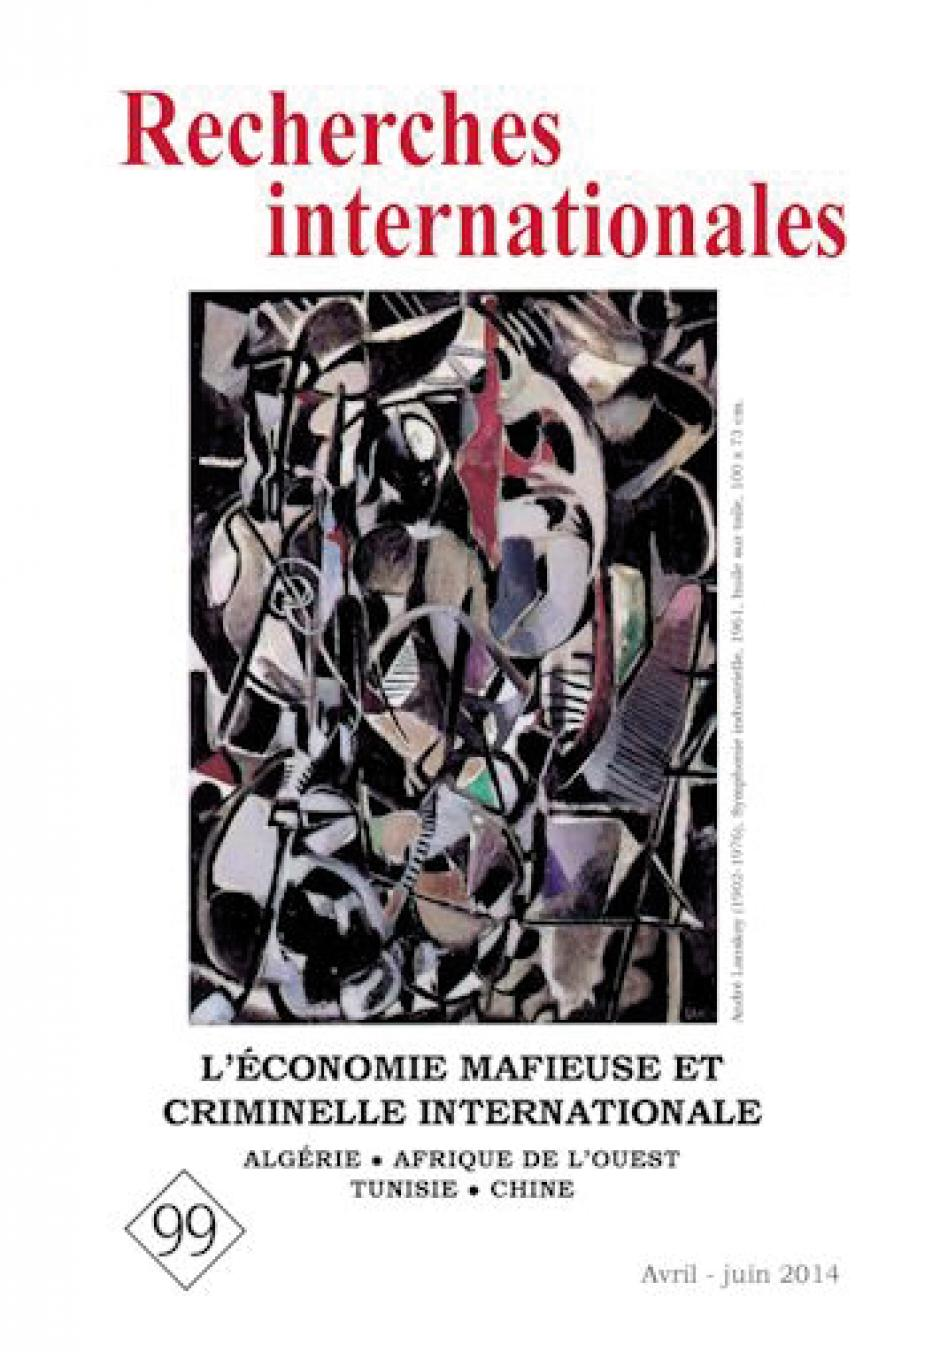 « L'économie mafieuse et criminelle internationale »